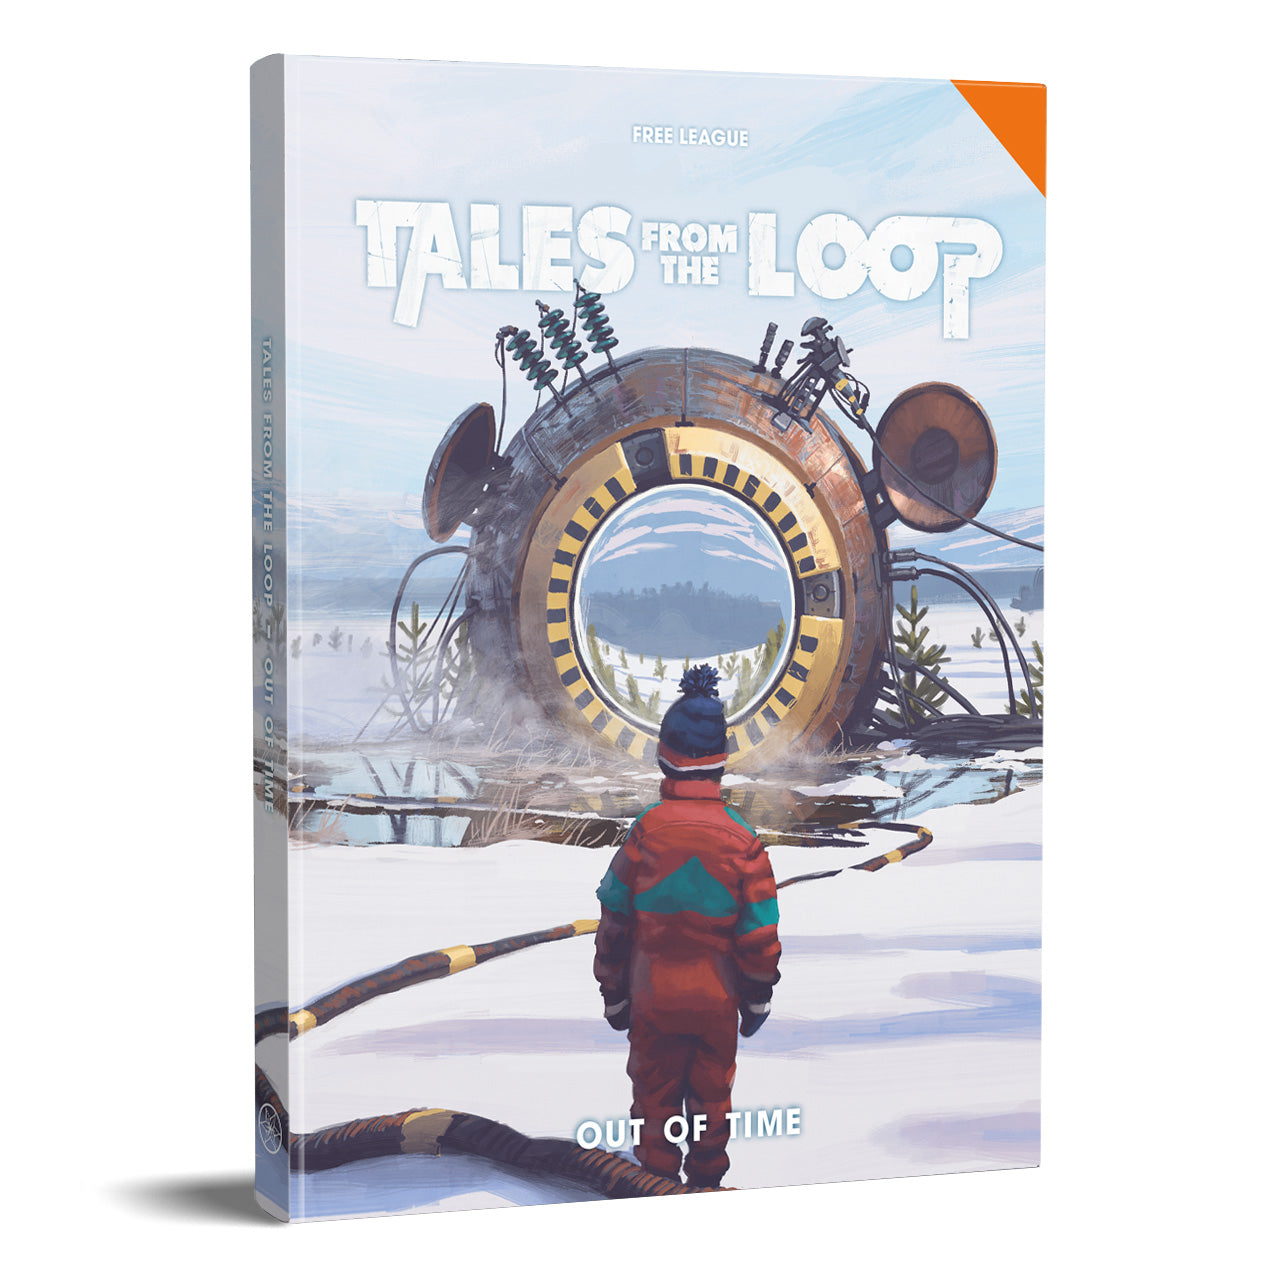 Out of Time: Tales from the Loop RPG -  Free League